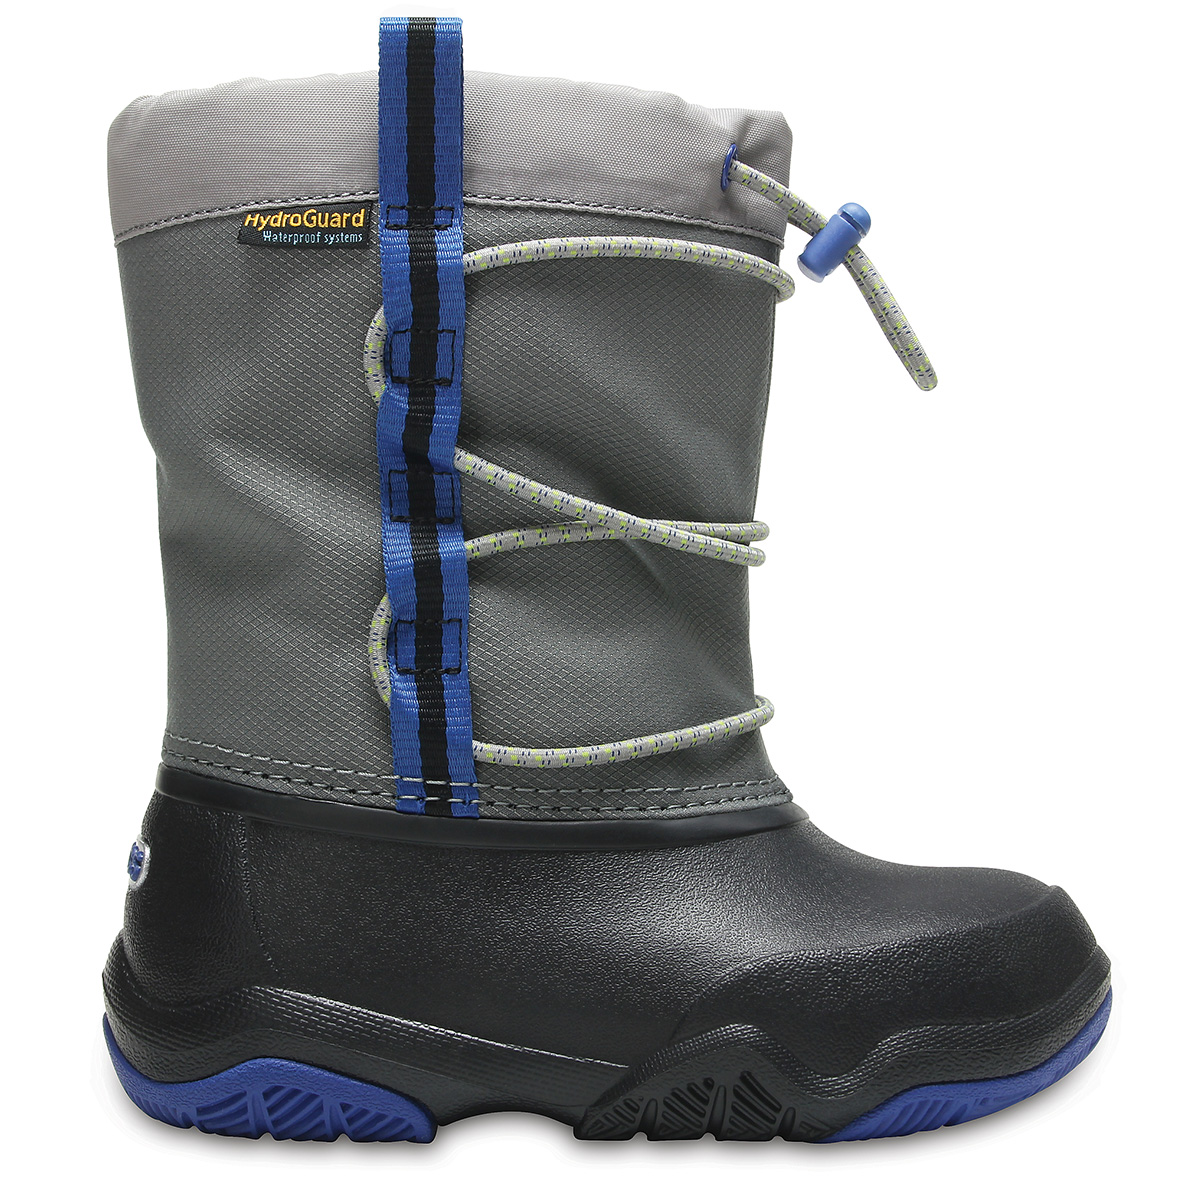 Swiftwater Waterproof Boot K - Siyah/Mavi Jean